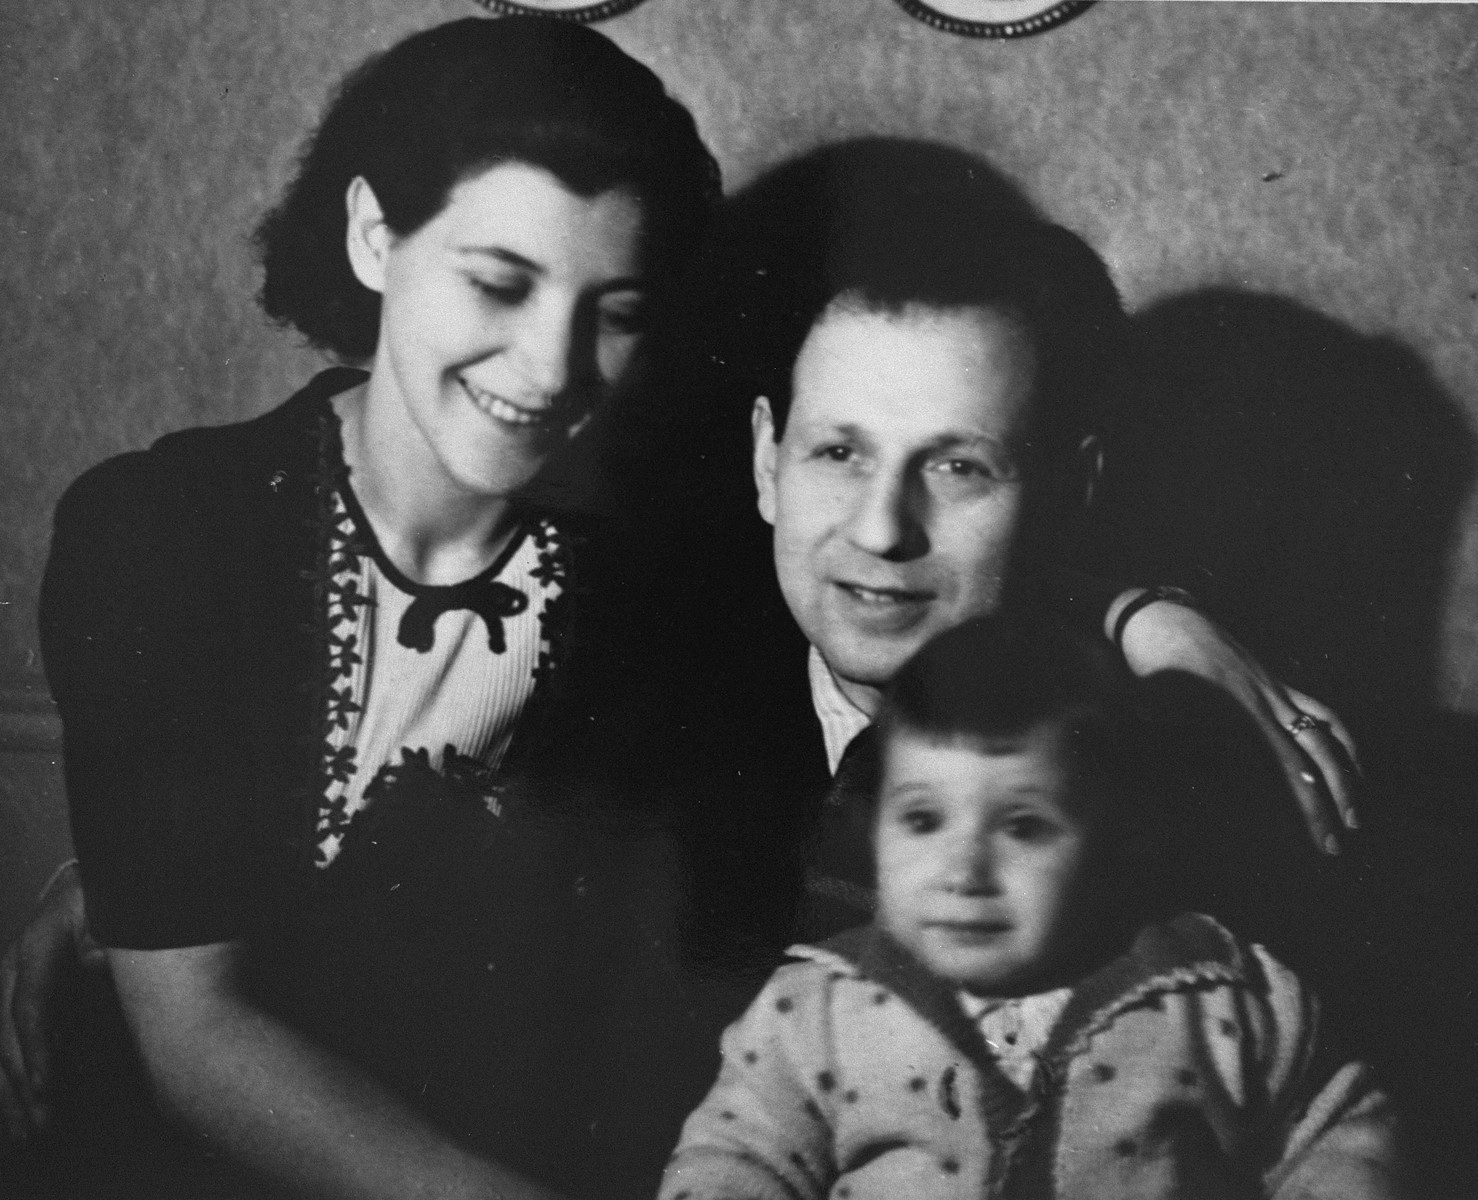 Portrait of a Jewish family in Paris around the time of the German invasion.  Evi Weisz with her parents, Hermann and Magda Pollak Weisz.